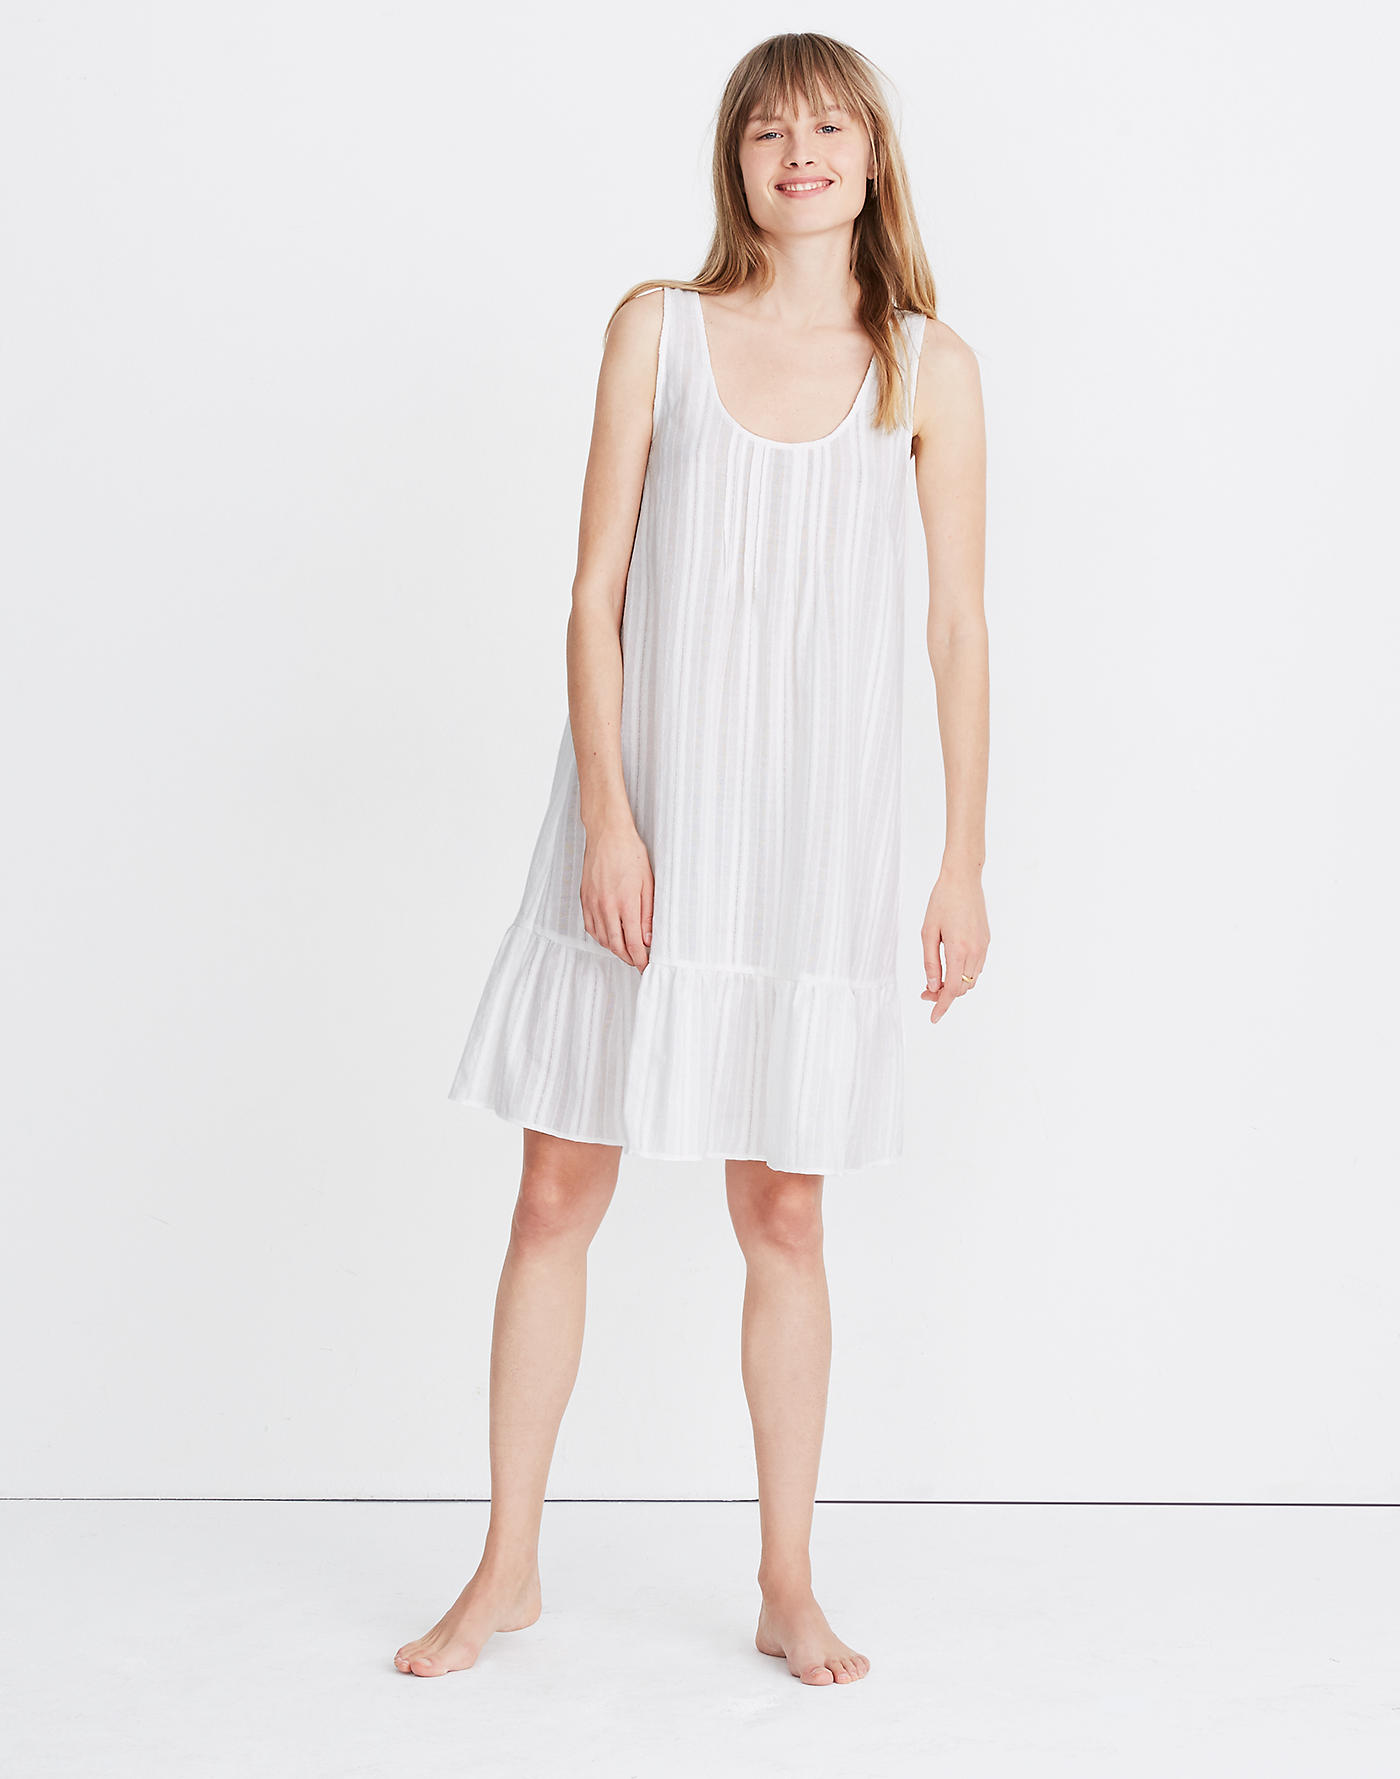 Affordable It Summer Sandals Madewell Pintuck Sleep Dress